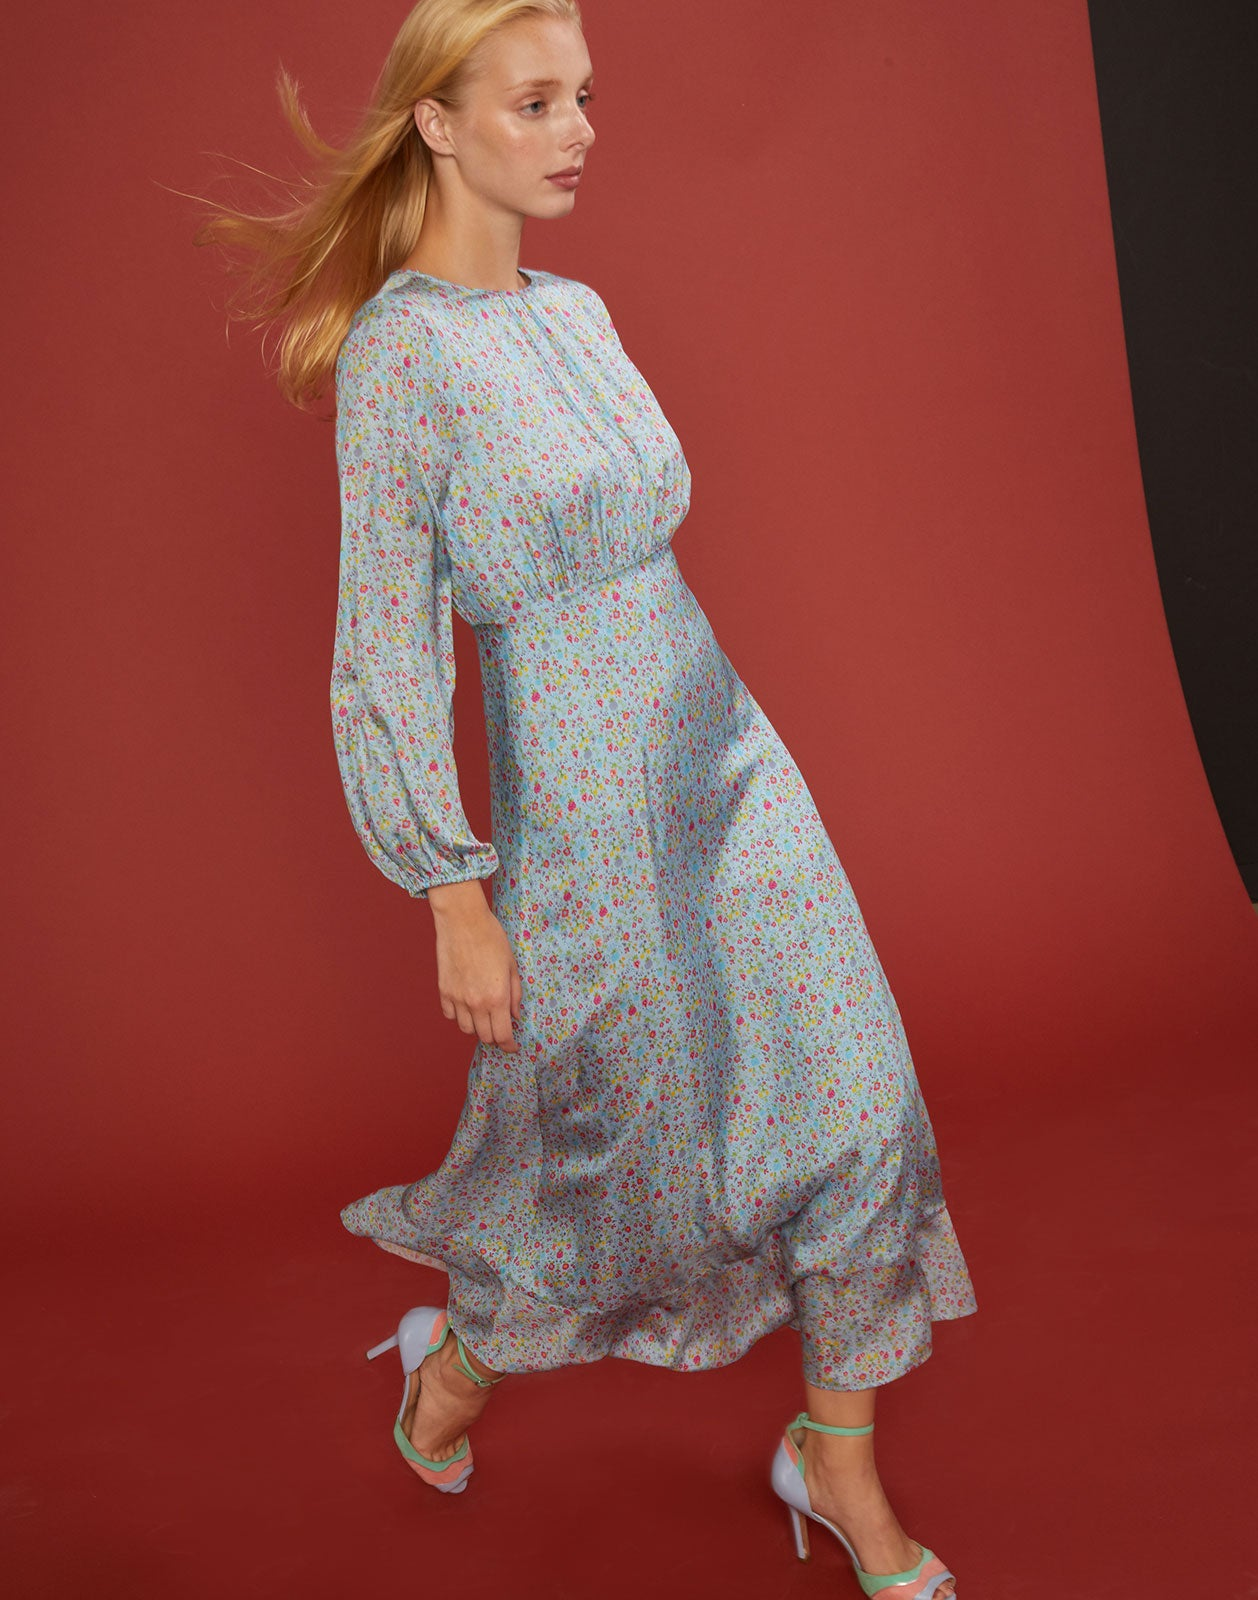 Sky floral printed silk maxi dress with bell sleeves.